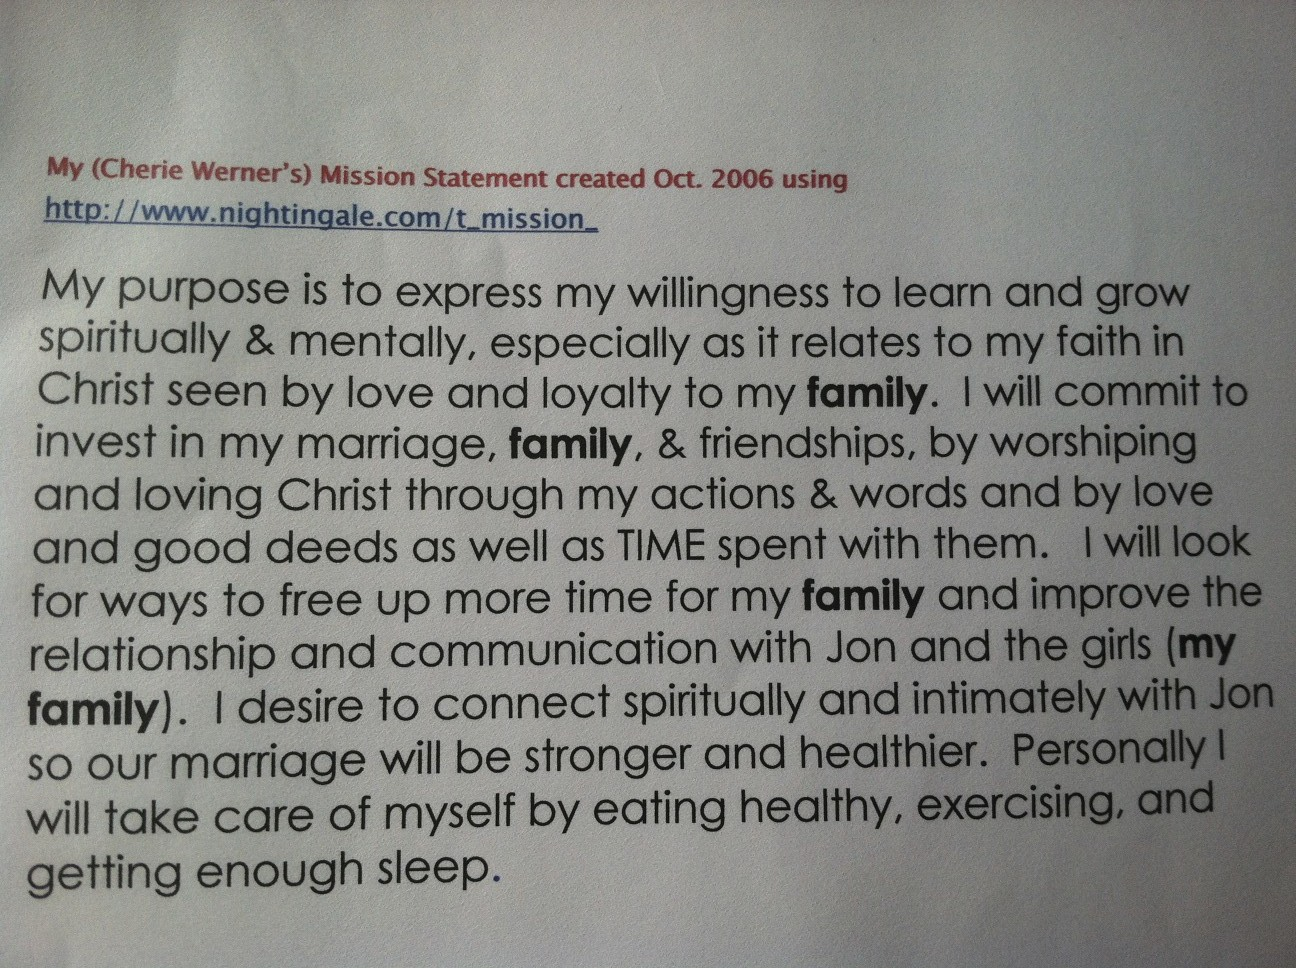 my personal mission statement as a christian order paper online thewerners org